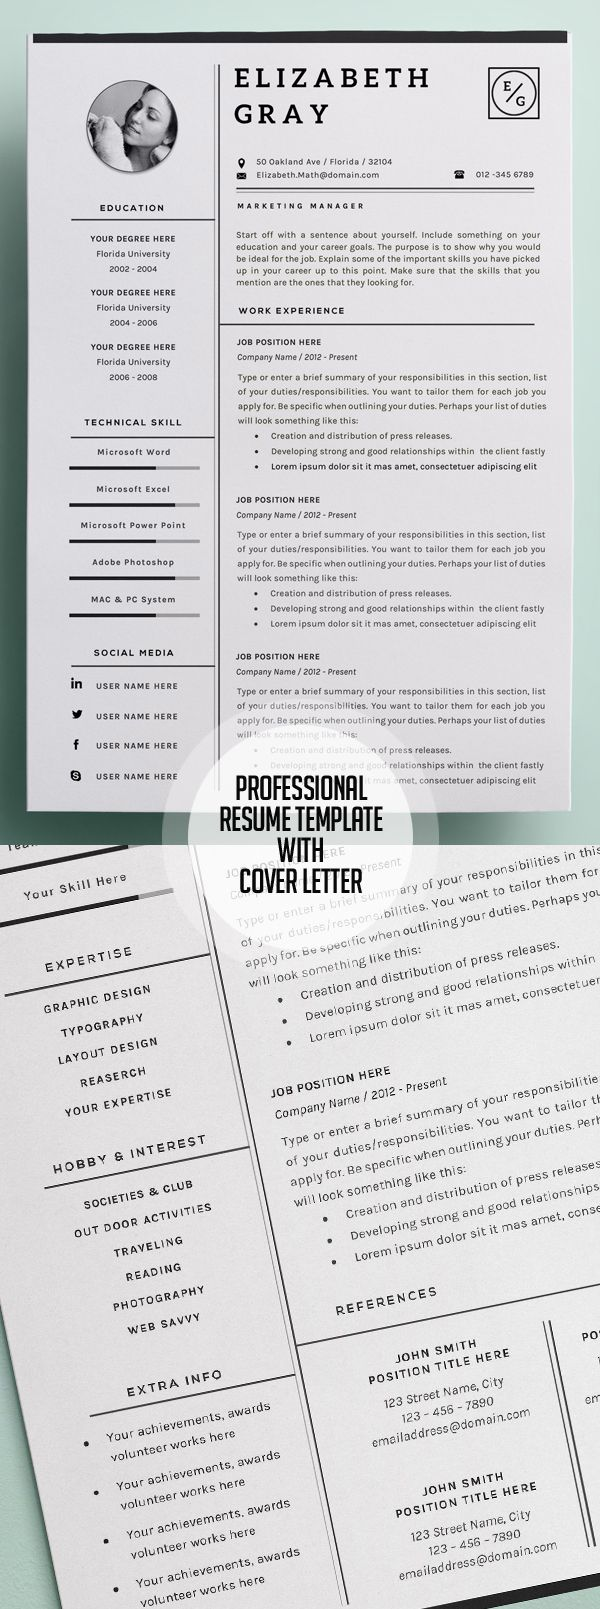 Picnictoimpeachus  Sweet  Resume Ideas On Pinterest  Resume Resume Templates And  With Extraordinary Professional And Modern Resume Template With Page Cover Cvtemplate With Cool Promotional Model Resume Also Create A Resume Free Online In Addition New Resume Templates And Probation Officer Resume As Well As Examples Of Sales Resumes Additionally How To Make Your Resume From Pinterestcom With Picnictoimpeachus  Extraordinary  Resume Ideas On Pinterest  Resume Resume Templates And  With Cool Professional And Modern Resume Template With Page Cover Cvtemplate And Sweet Promotional Model Resume Also Create A Resume Free Online In Addition New Resume Templates From Pinterestcom